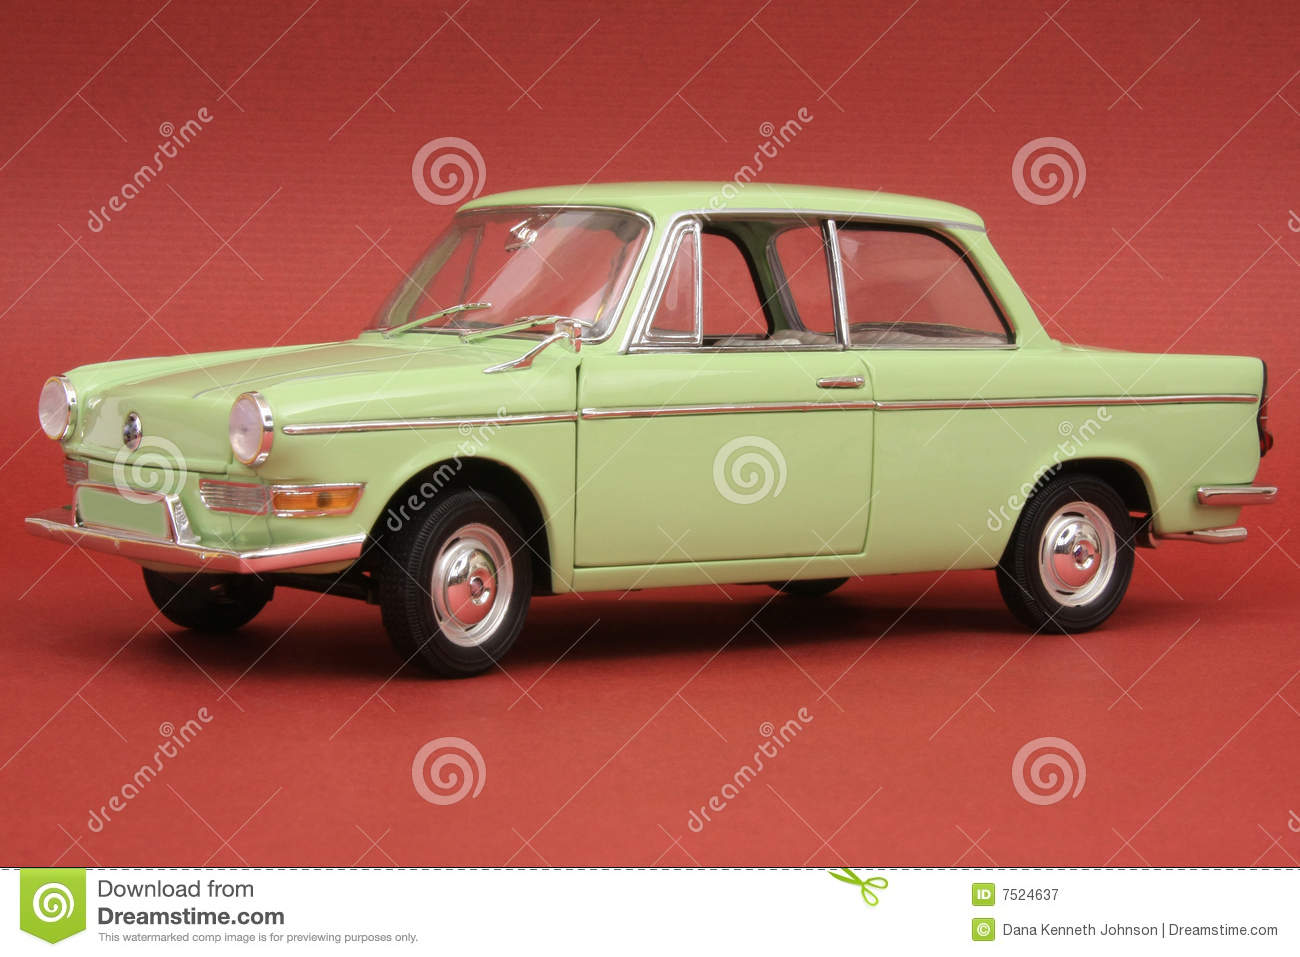 BMW LS Luxus 1962 Royalty Free Stock Photography - Image: 7524637